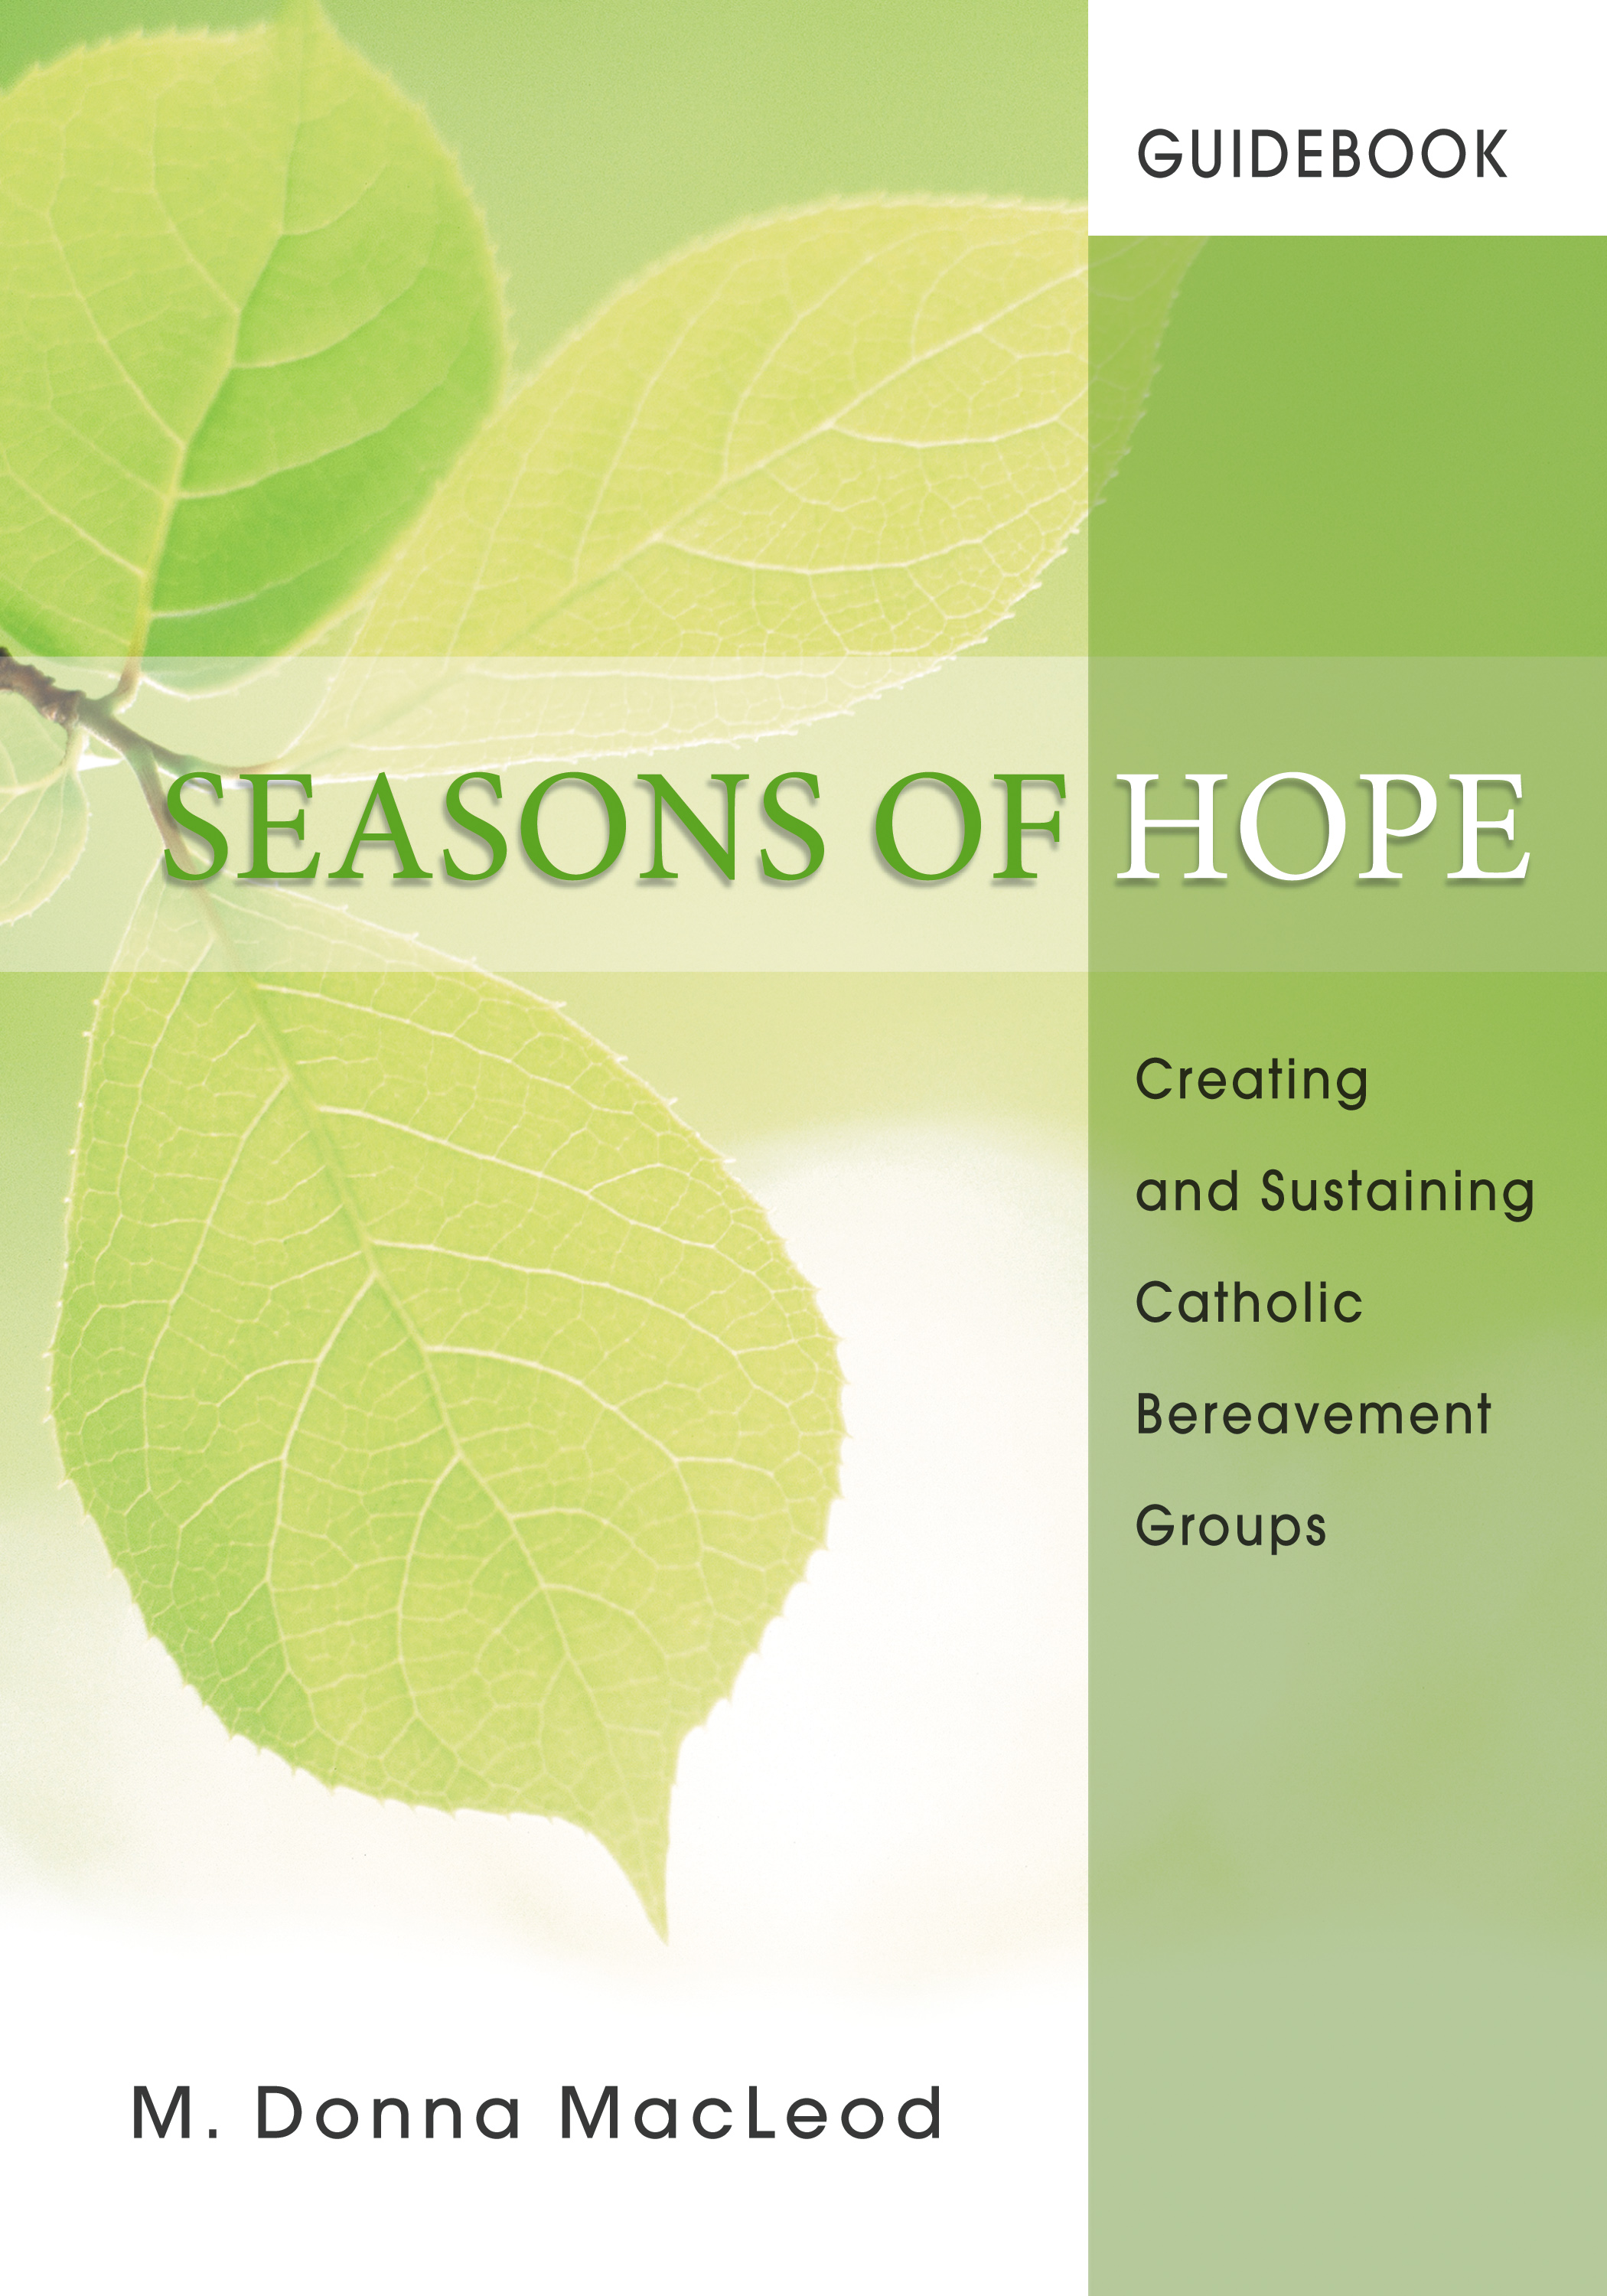 Seasons of Hope: Guidebook